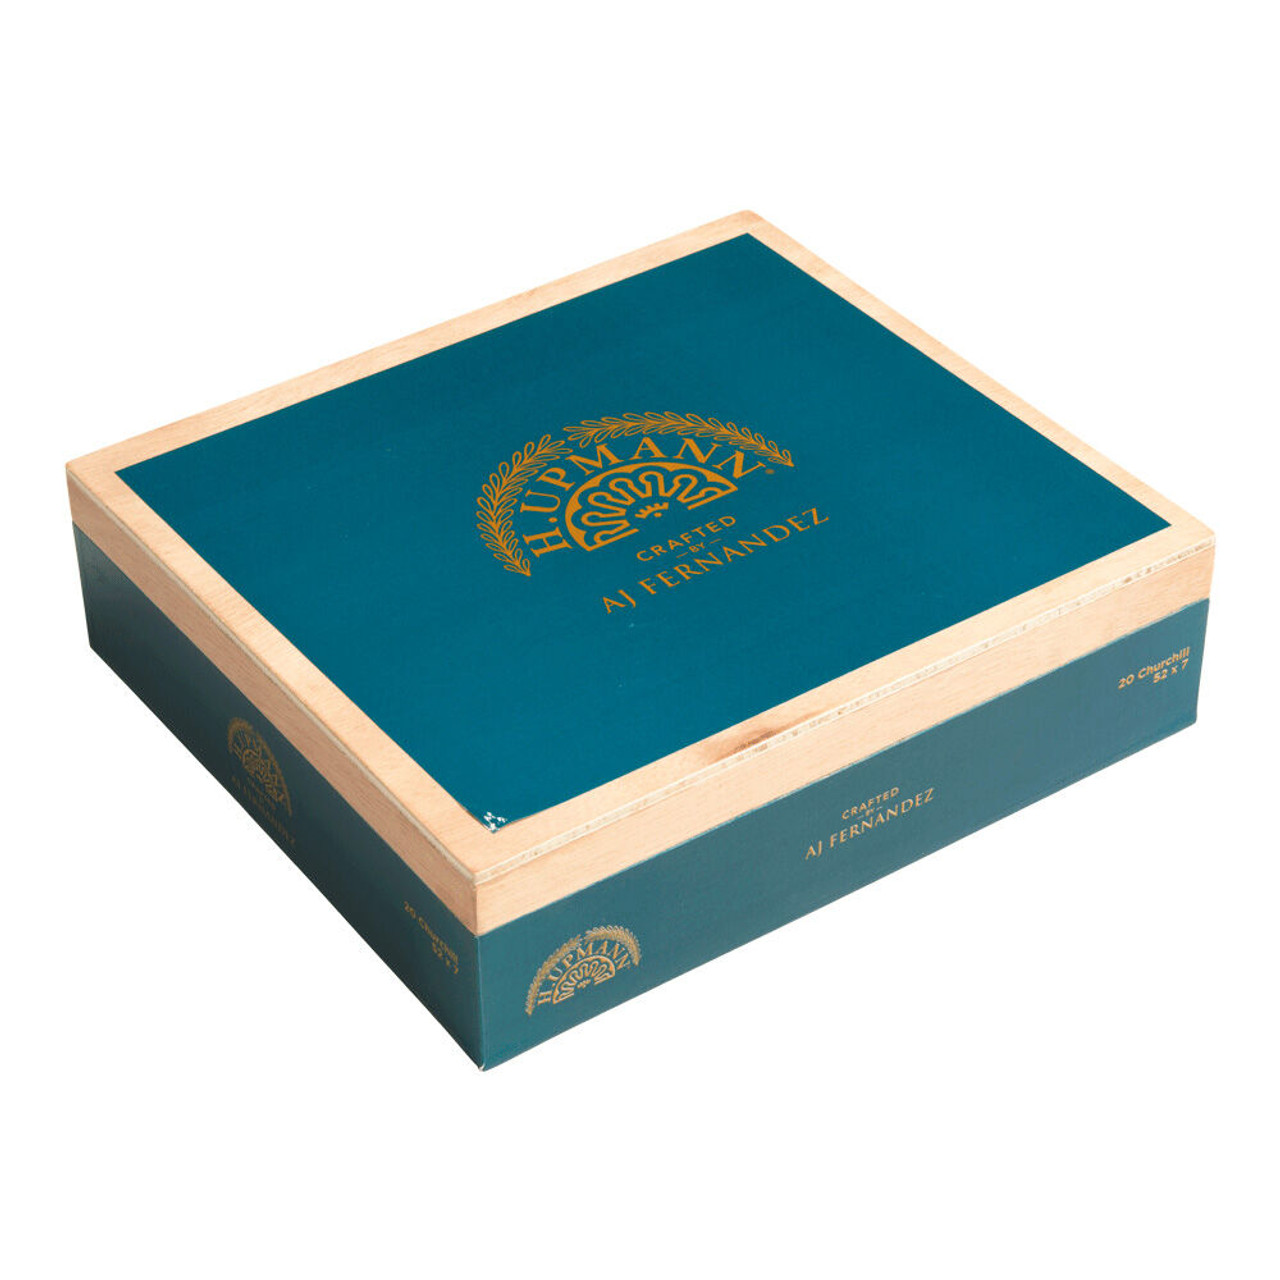 H. Upmann Crafted By AJ Fernandez Churchill Cigars - 7 x 52 (Box of 20)